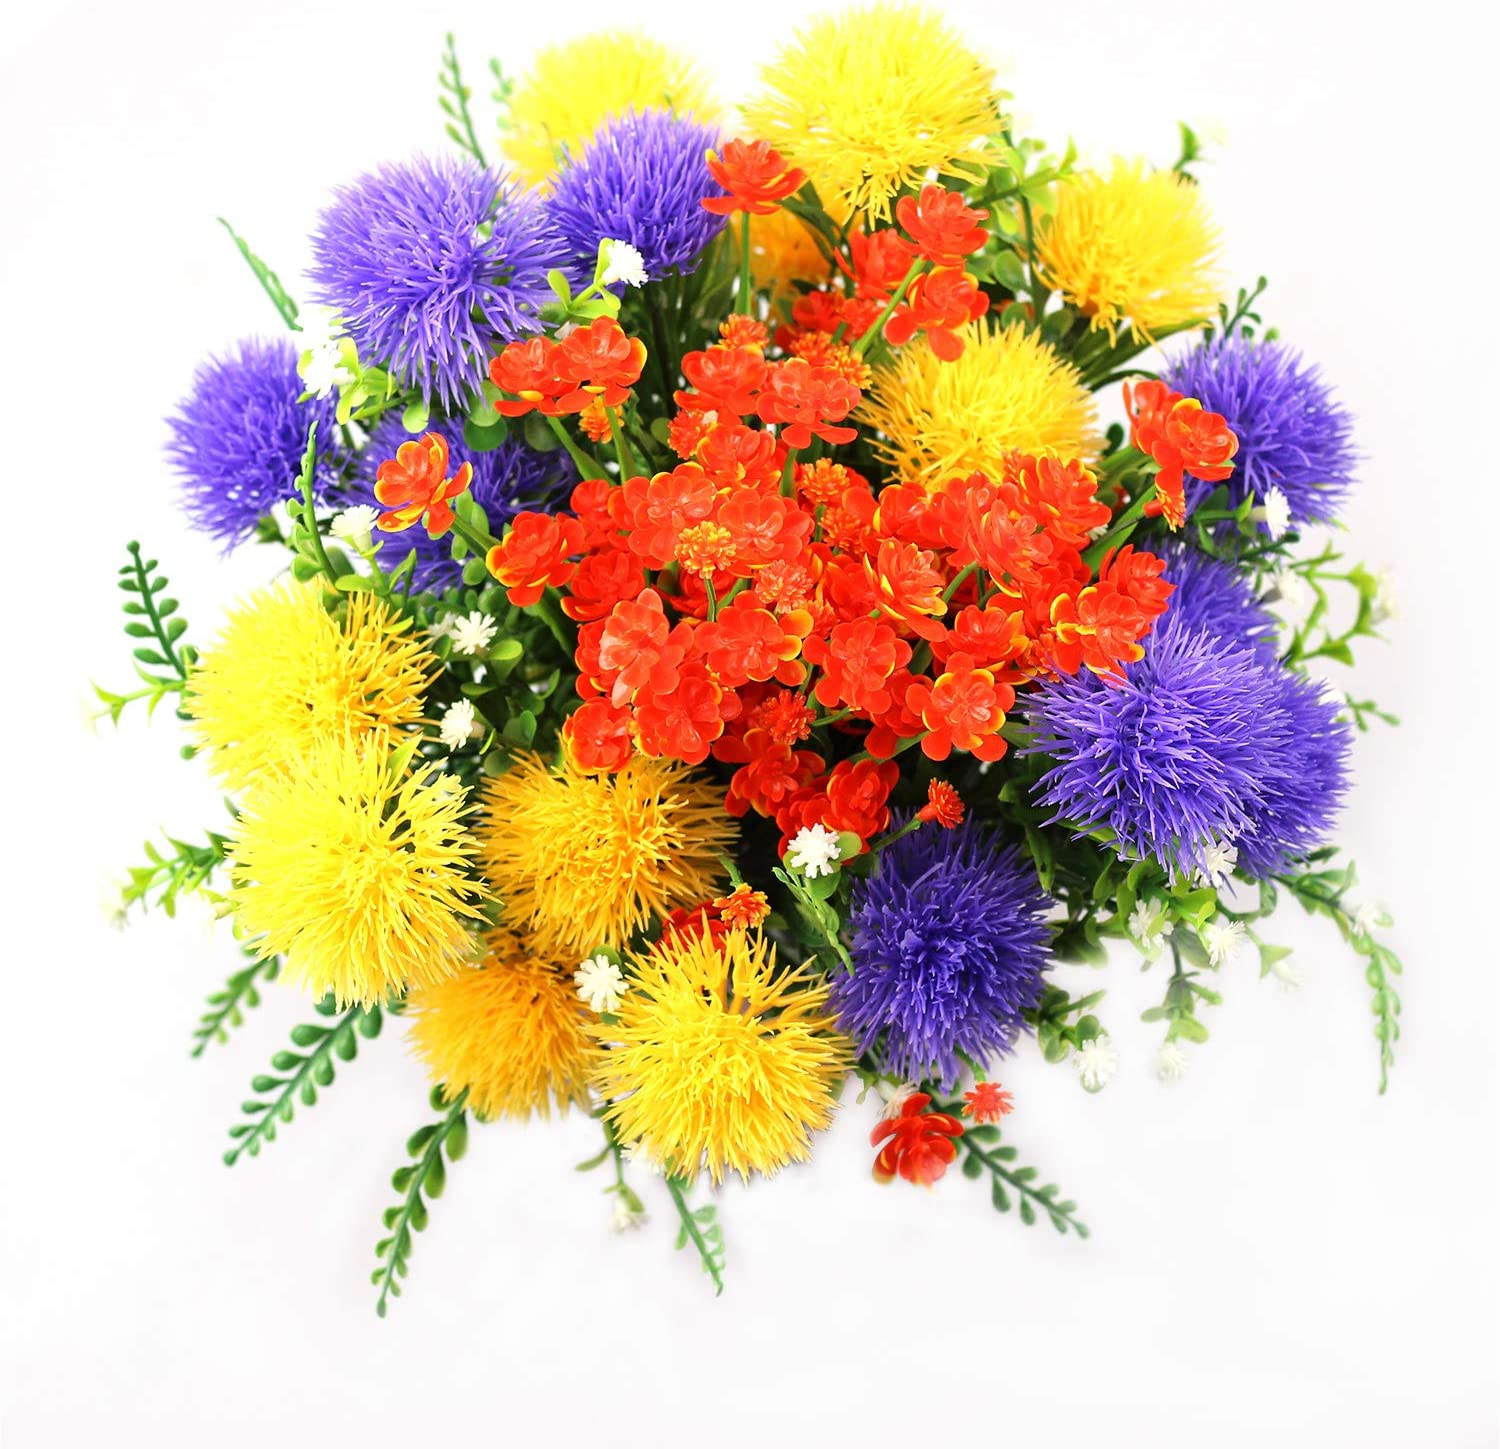 6 Pcs Artificial Flowers, Fake Orange Daffodils Flowers, Fake Yellow Hydrangea Flowers, Faux Purple Gypsophila Flowers 2pcs each for Indoor Outside Hanging Planter Home Kitchen Office Wedding Decor